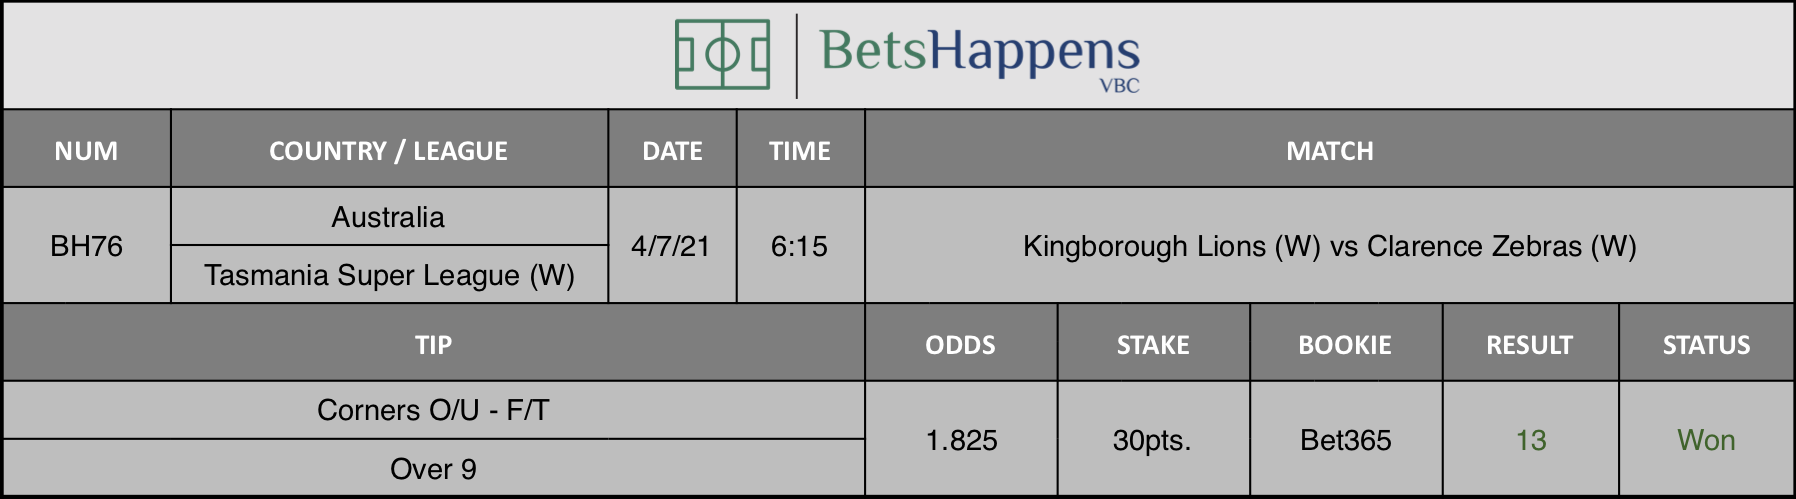 Results of our tip for the Kingborough Lions (W) vs Clarence Zebras (W) match. Corners O/U F/T Over 9 is recommended.